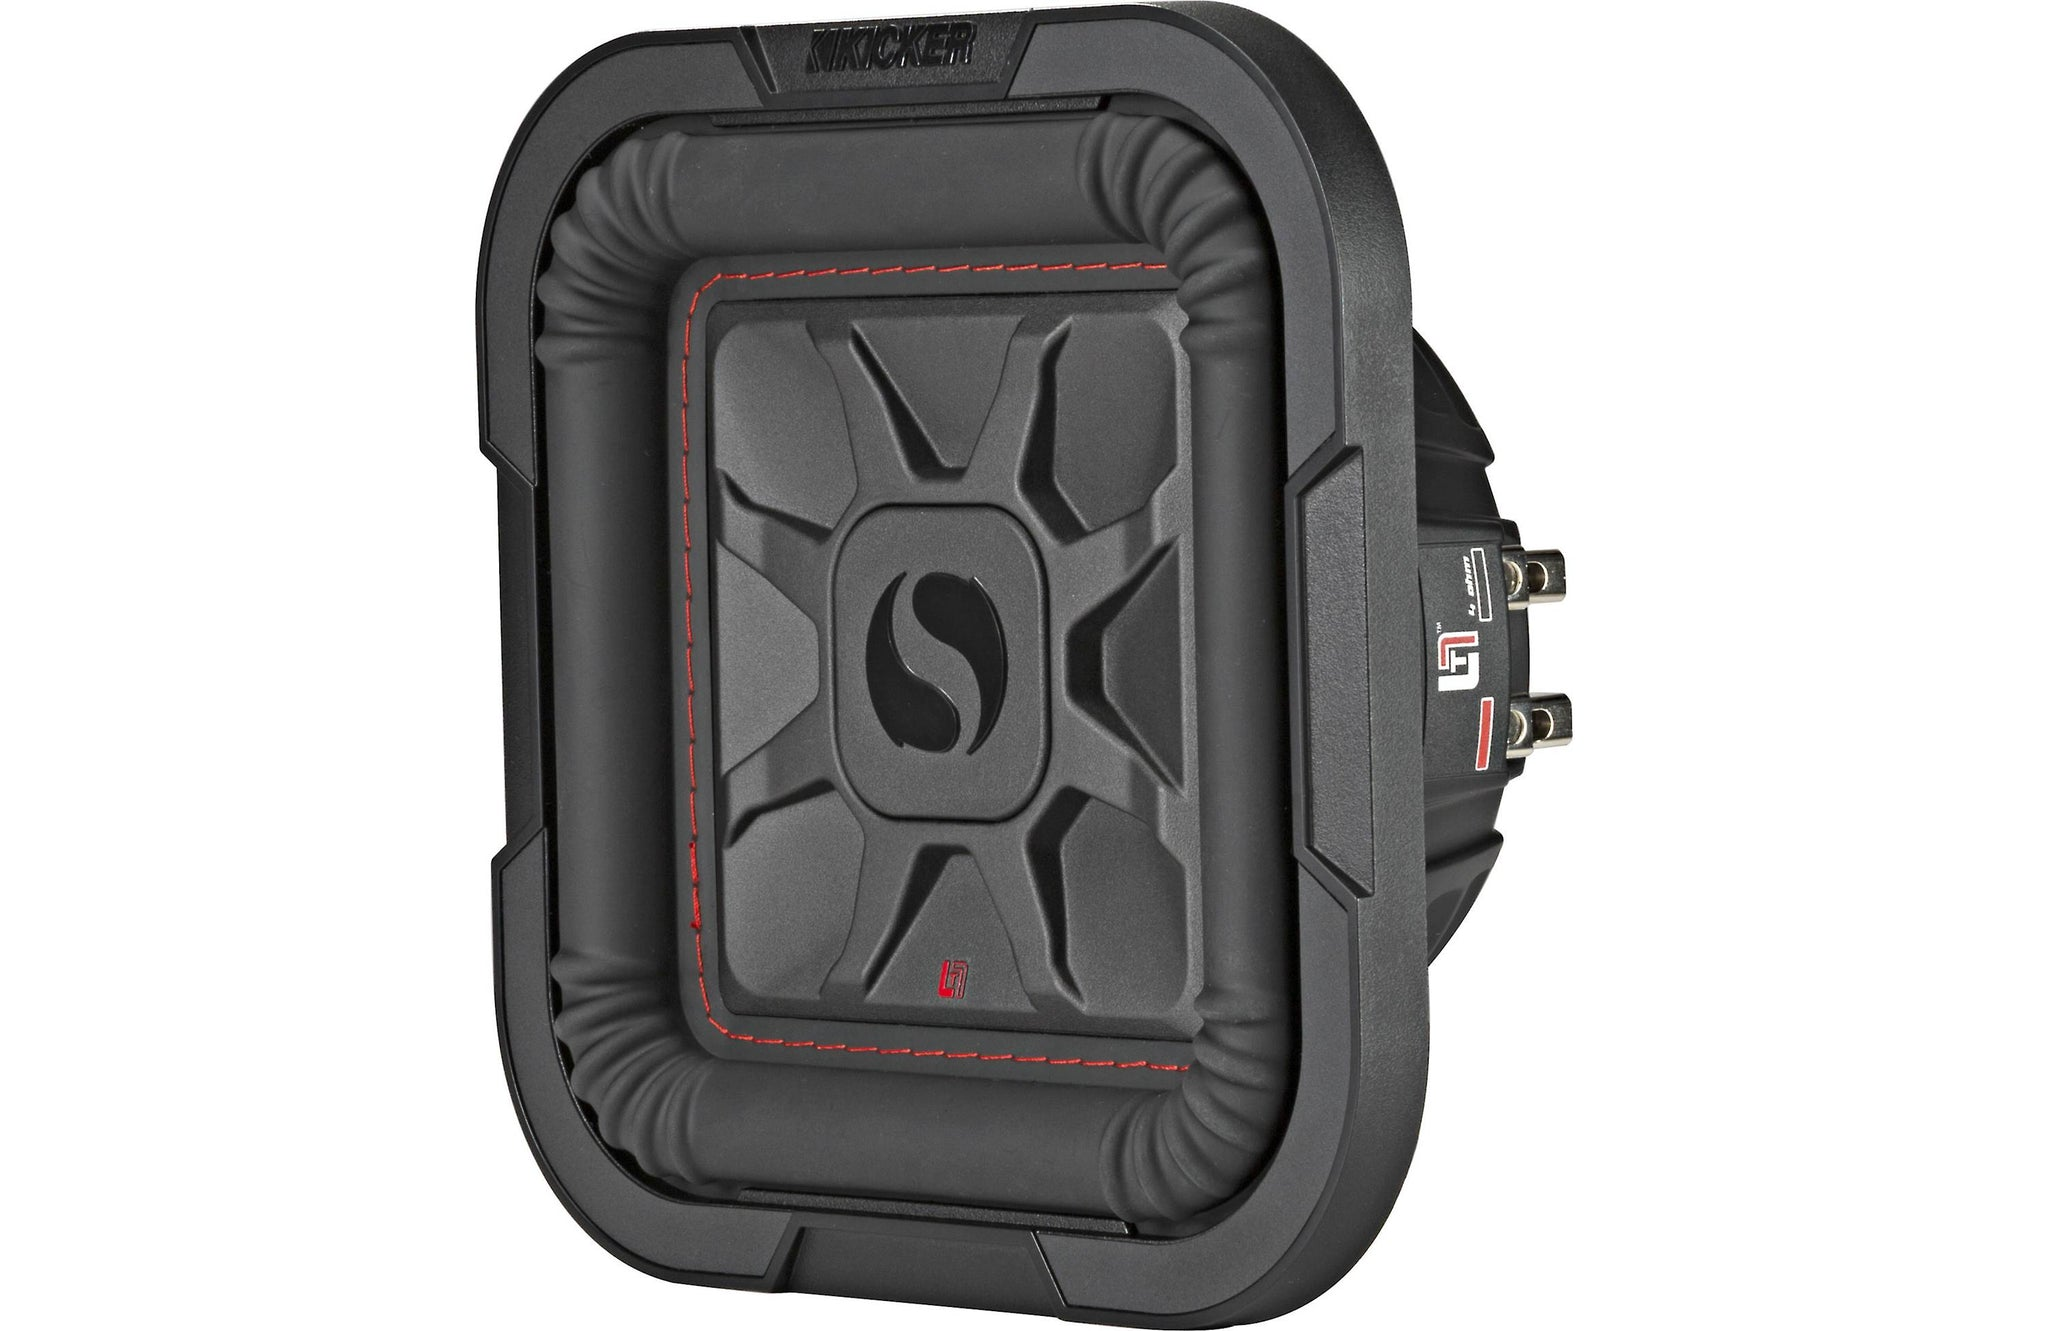 Subwoofer Wiring Help Subwoofers Car Audio Video Gps